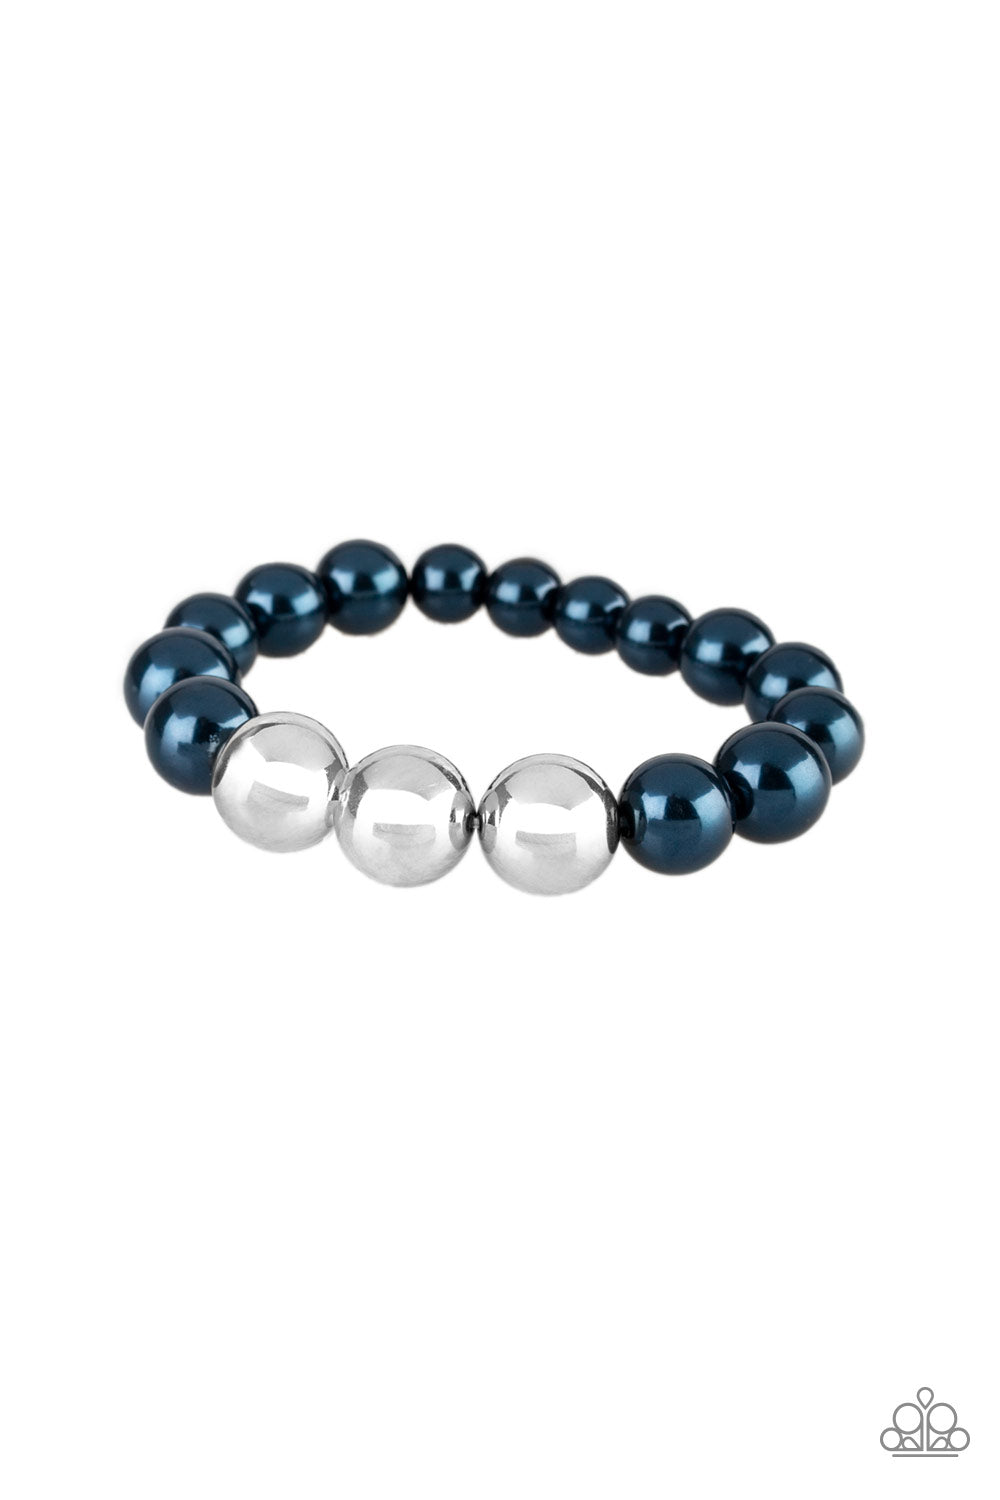 Paparazzi Accessories - All Dressed UPTOWN - Blue Bracelet - JMJ Jewelry Collection